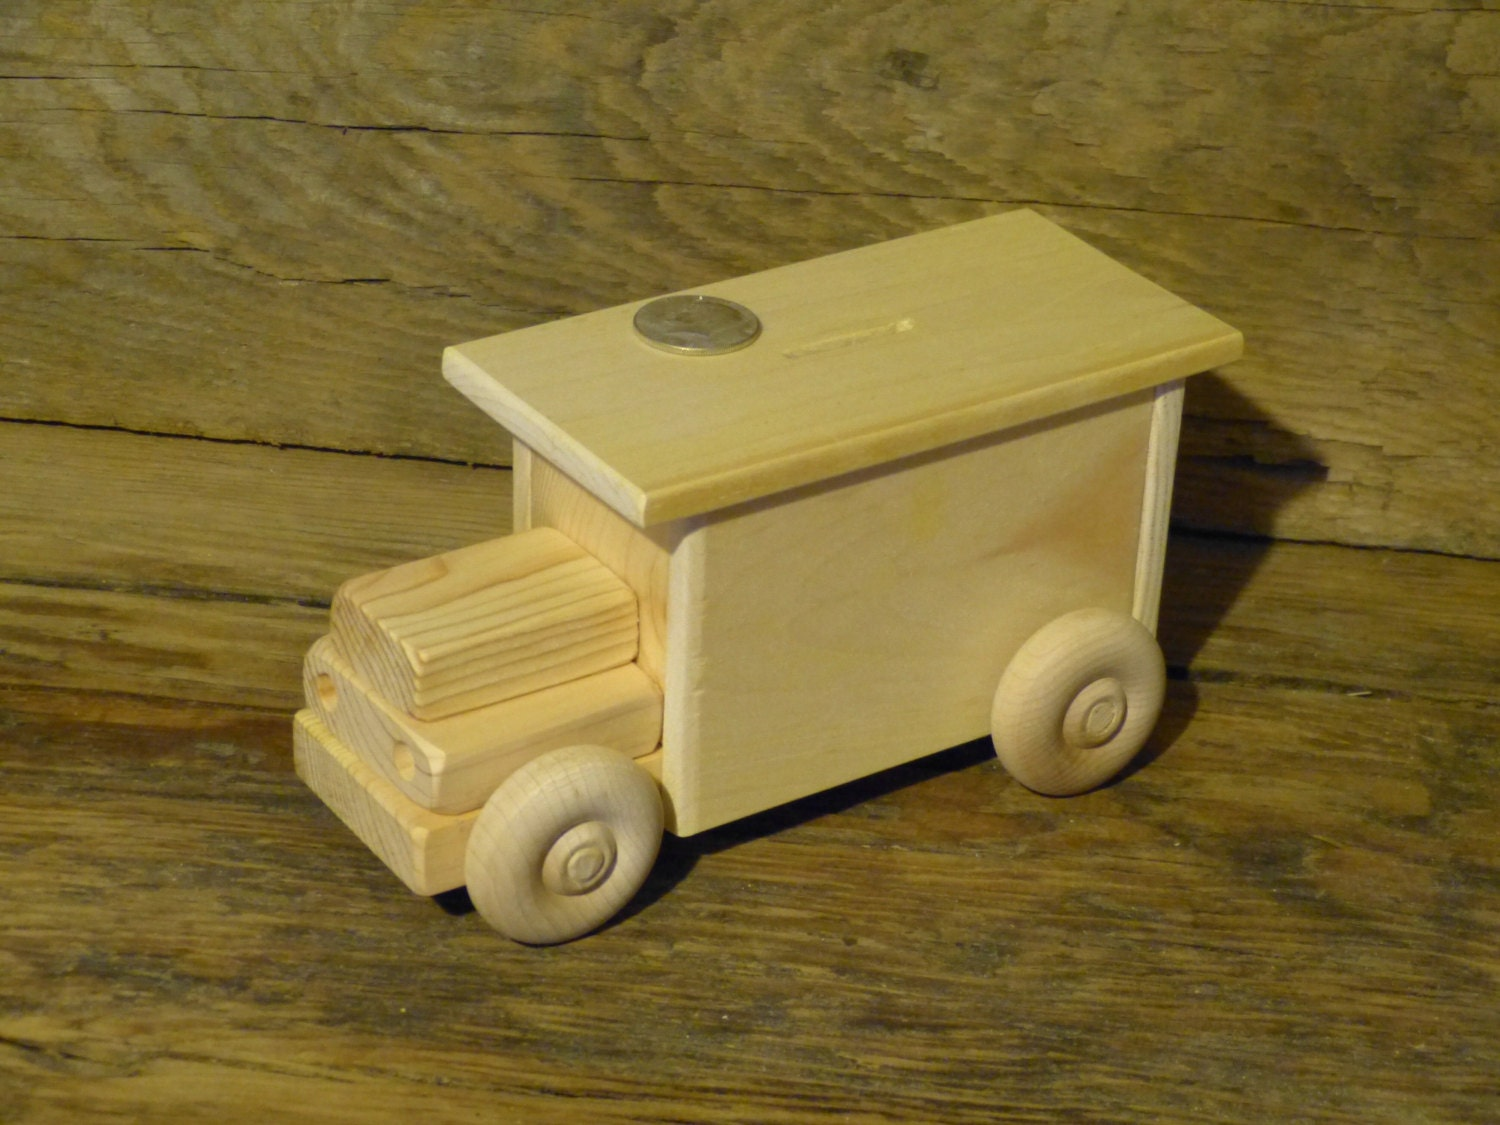 Wood toy bank truck wooden toys coin handmade woodworking for Handmade coin bank